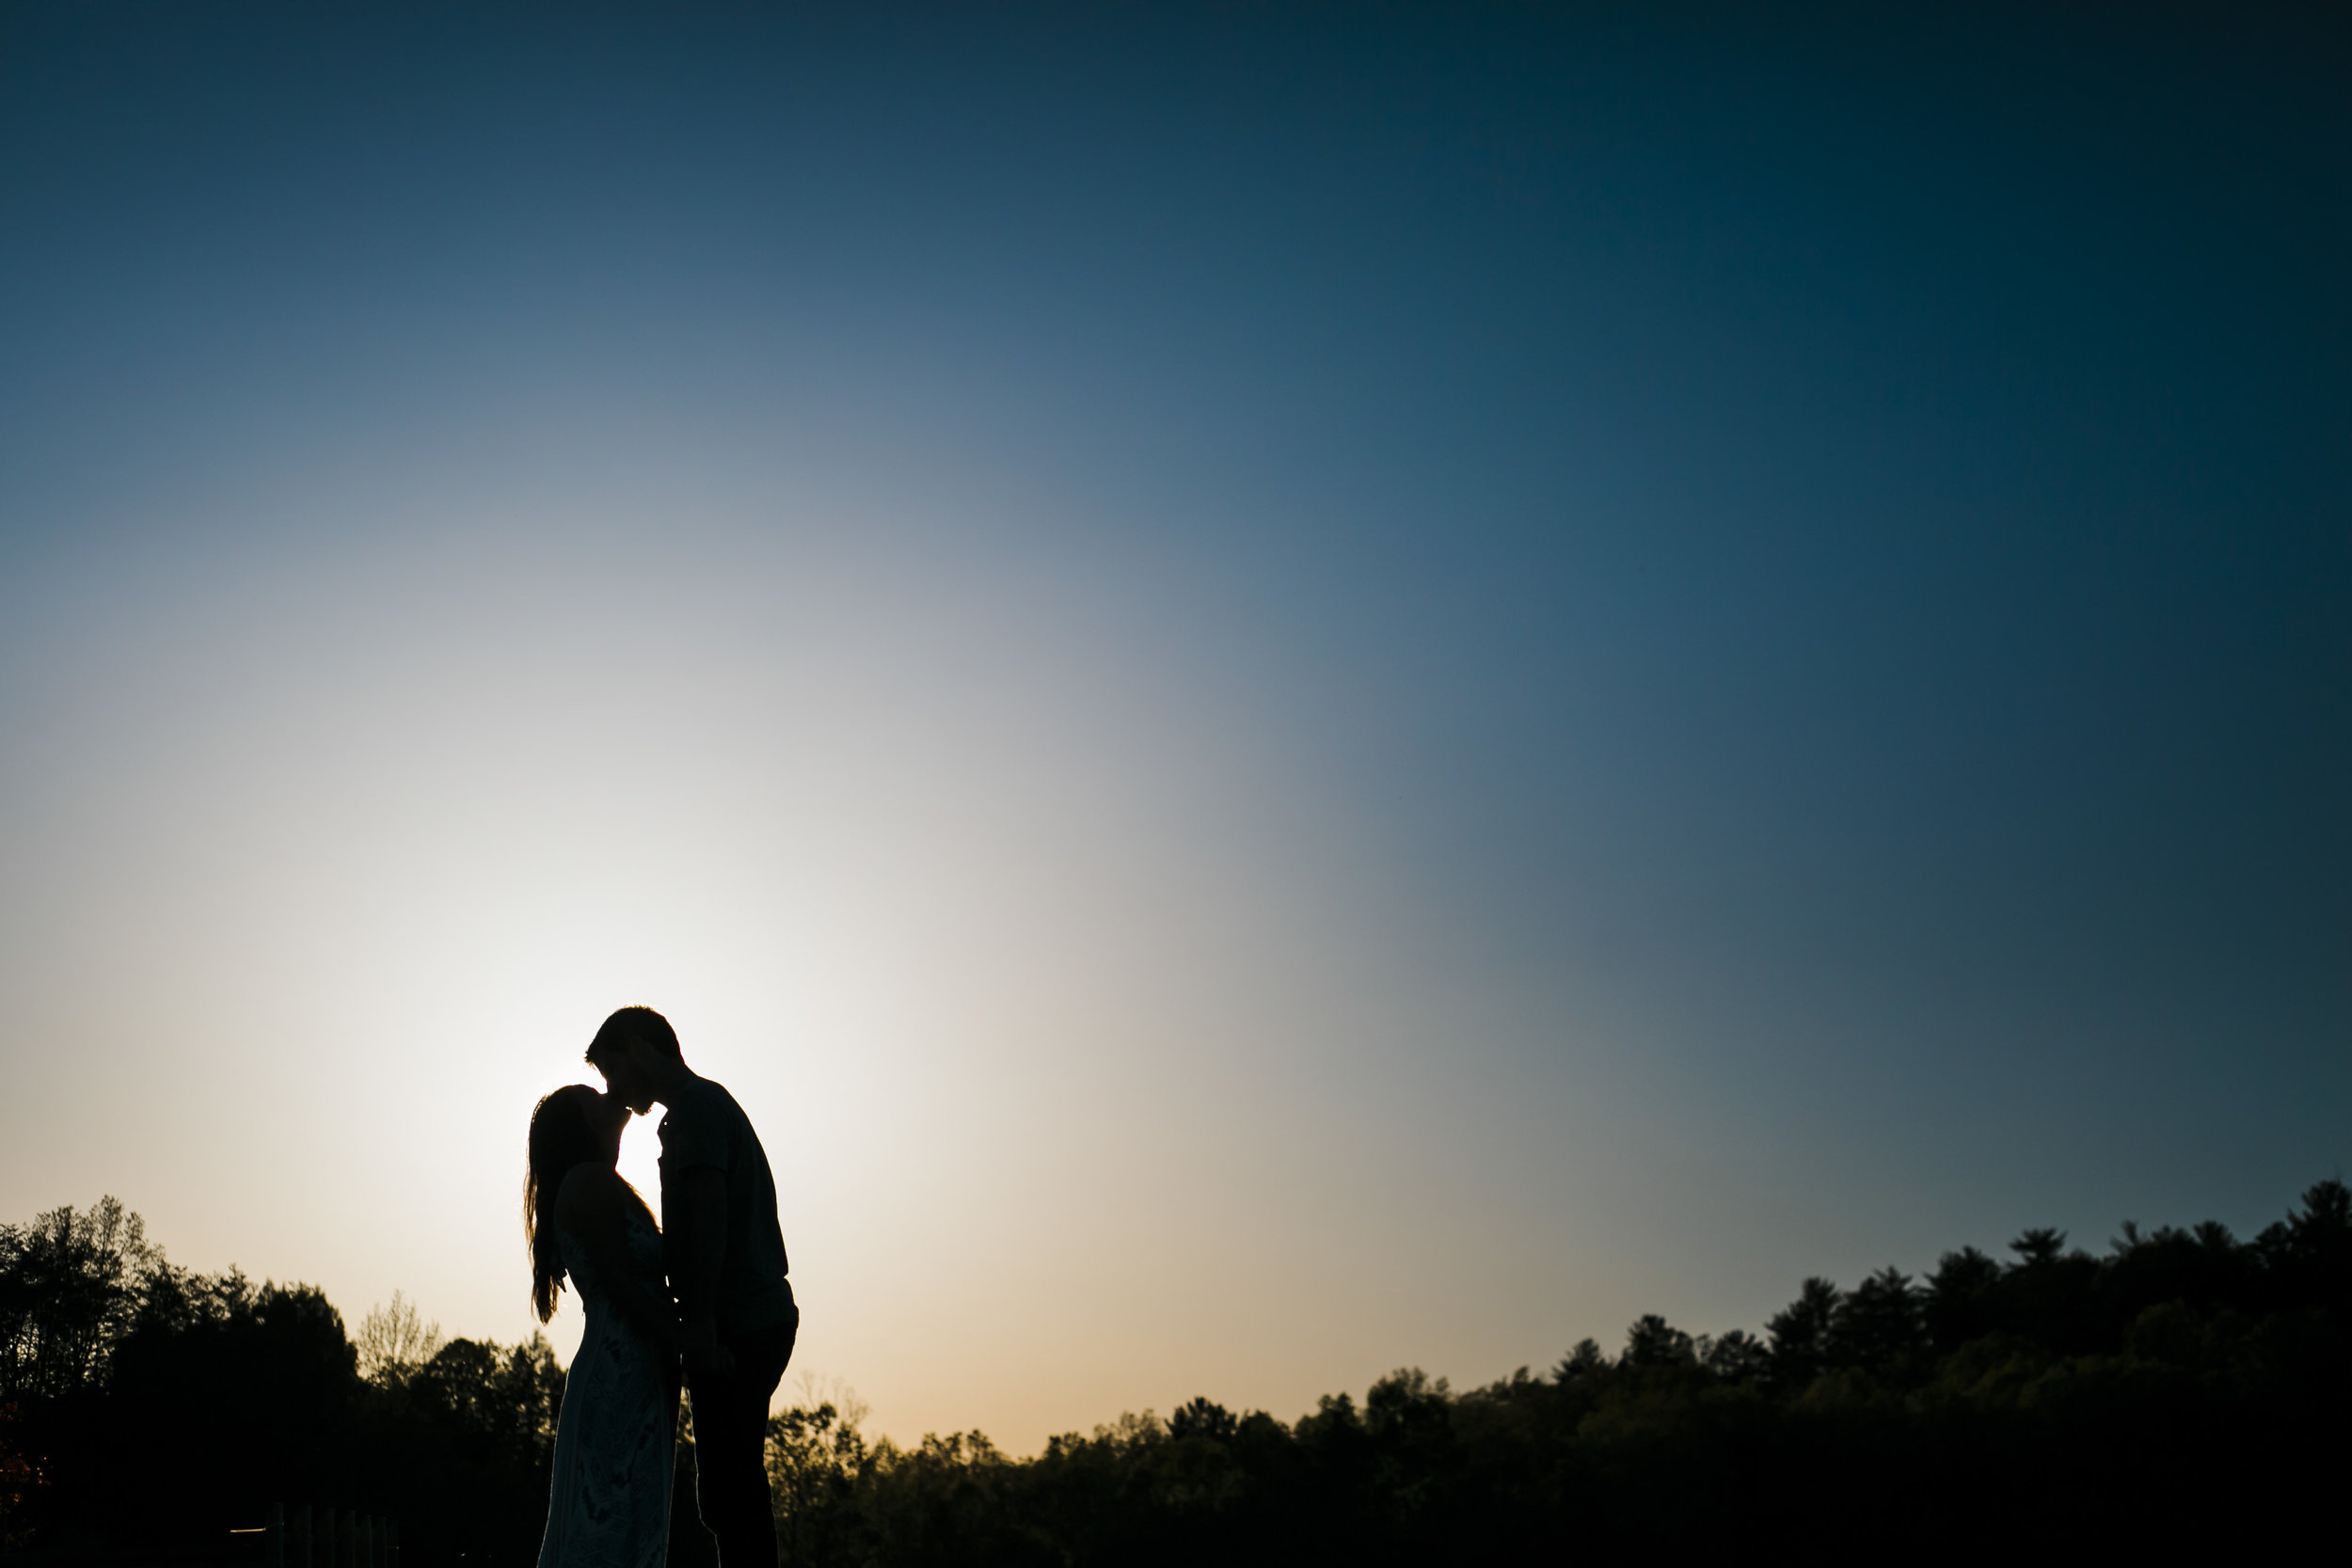 Chelsea&AndrewEngagement107.jpg